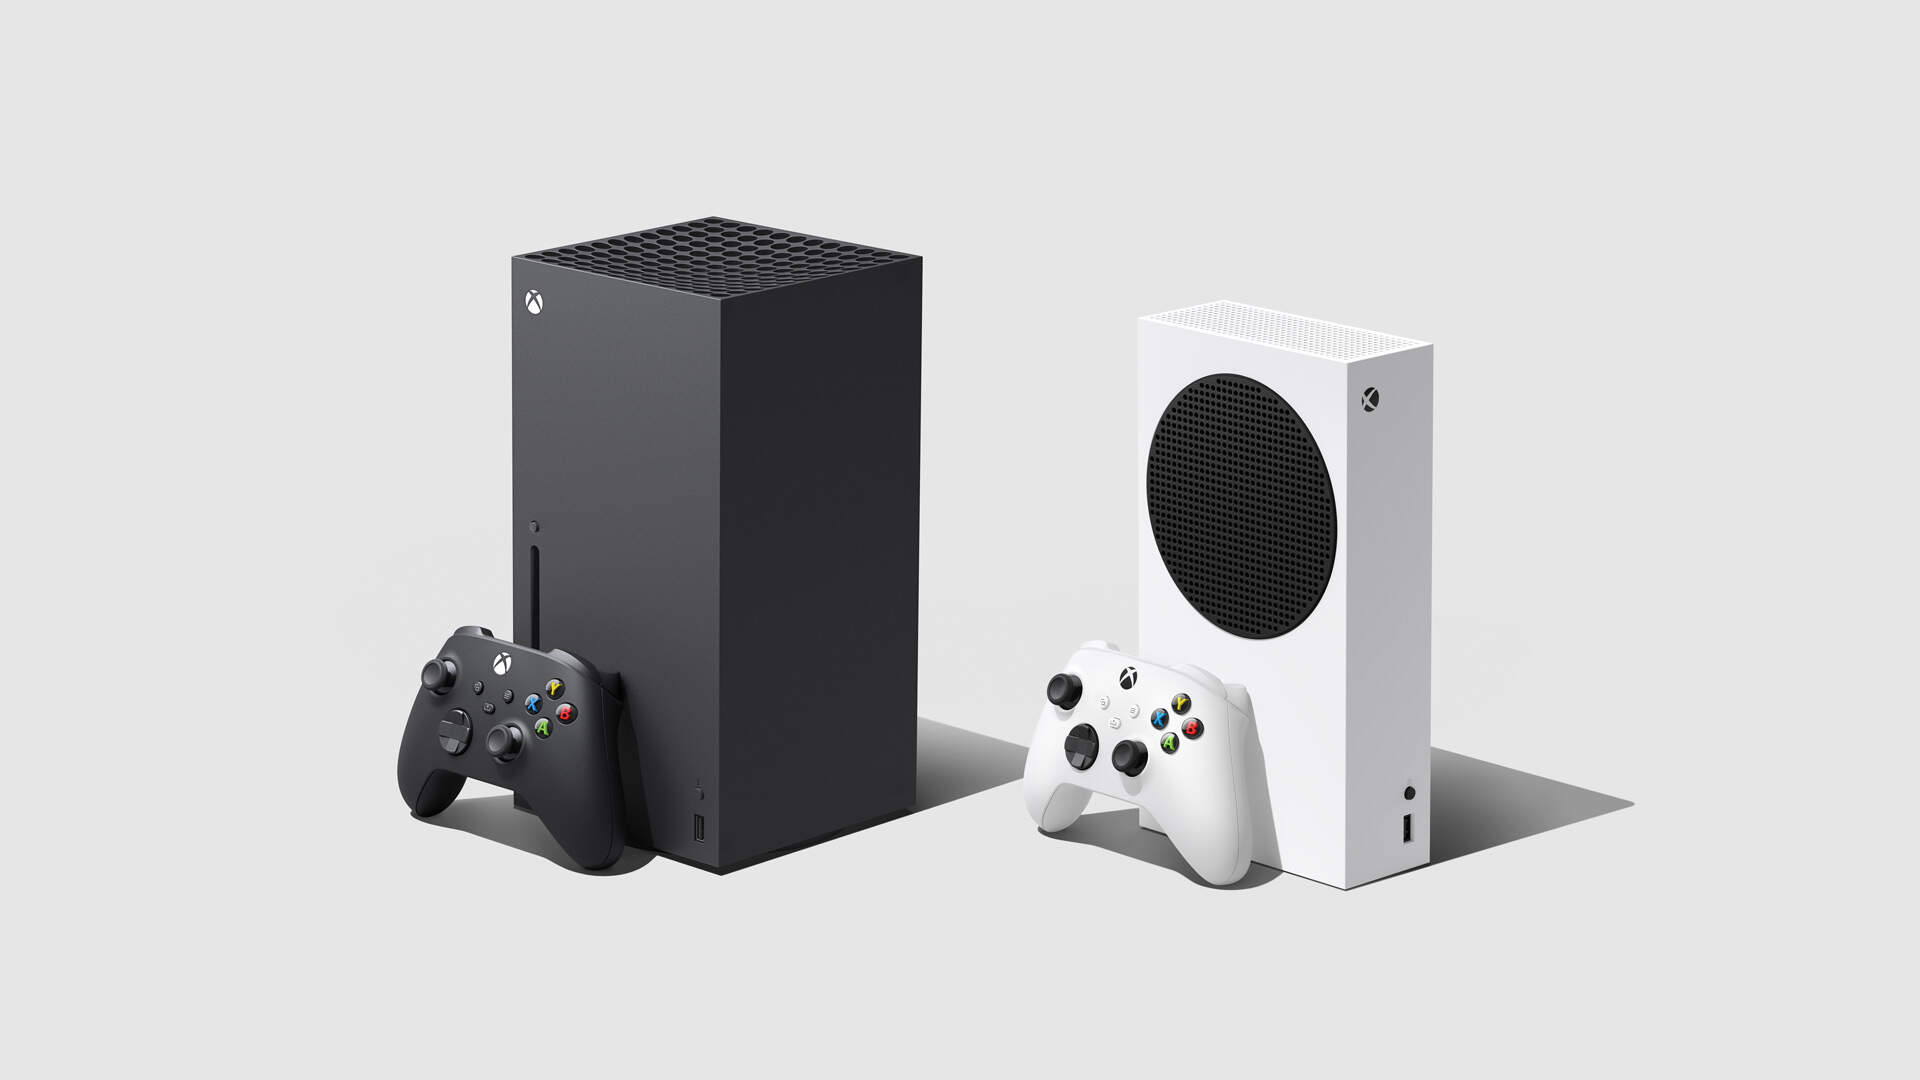 Xbox Says No New Acquisition News to Announce During Tokyo Game Show